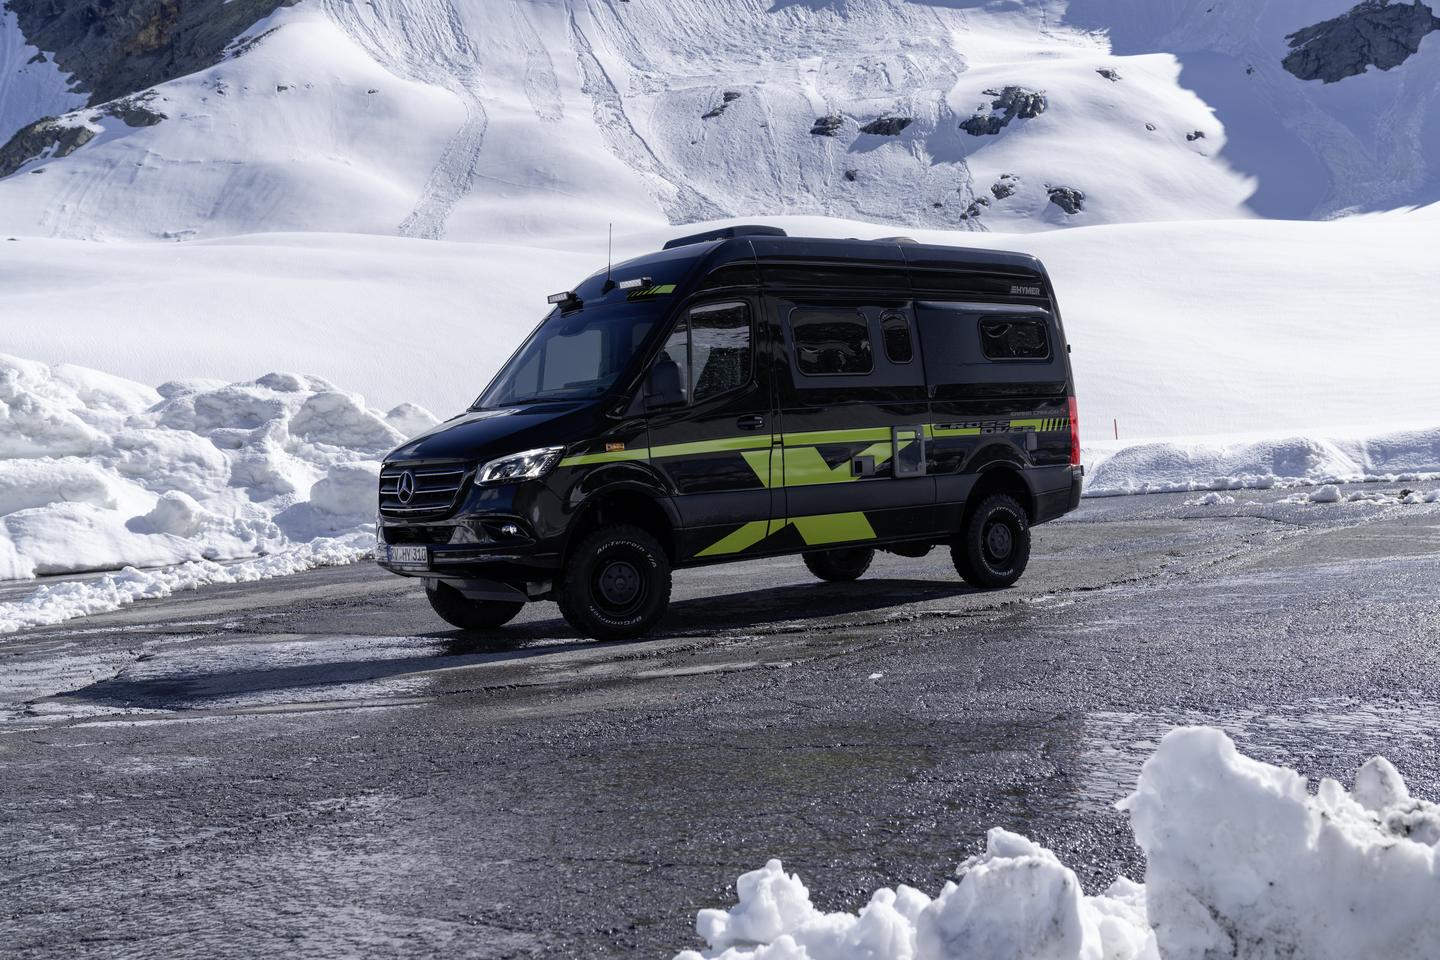 Hymer steps up its 4x4 game with the new CrossOver editions